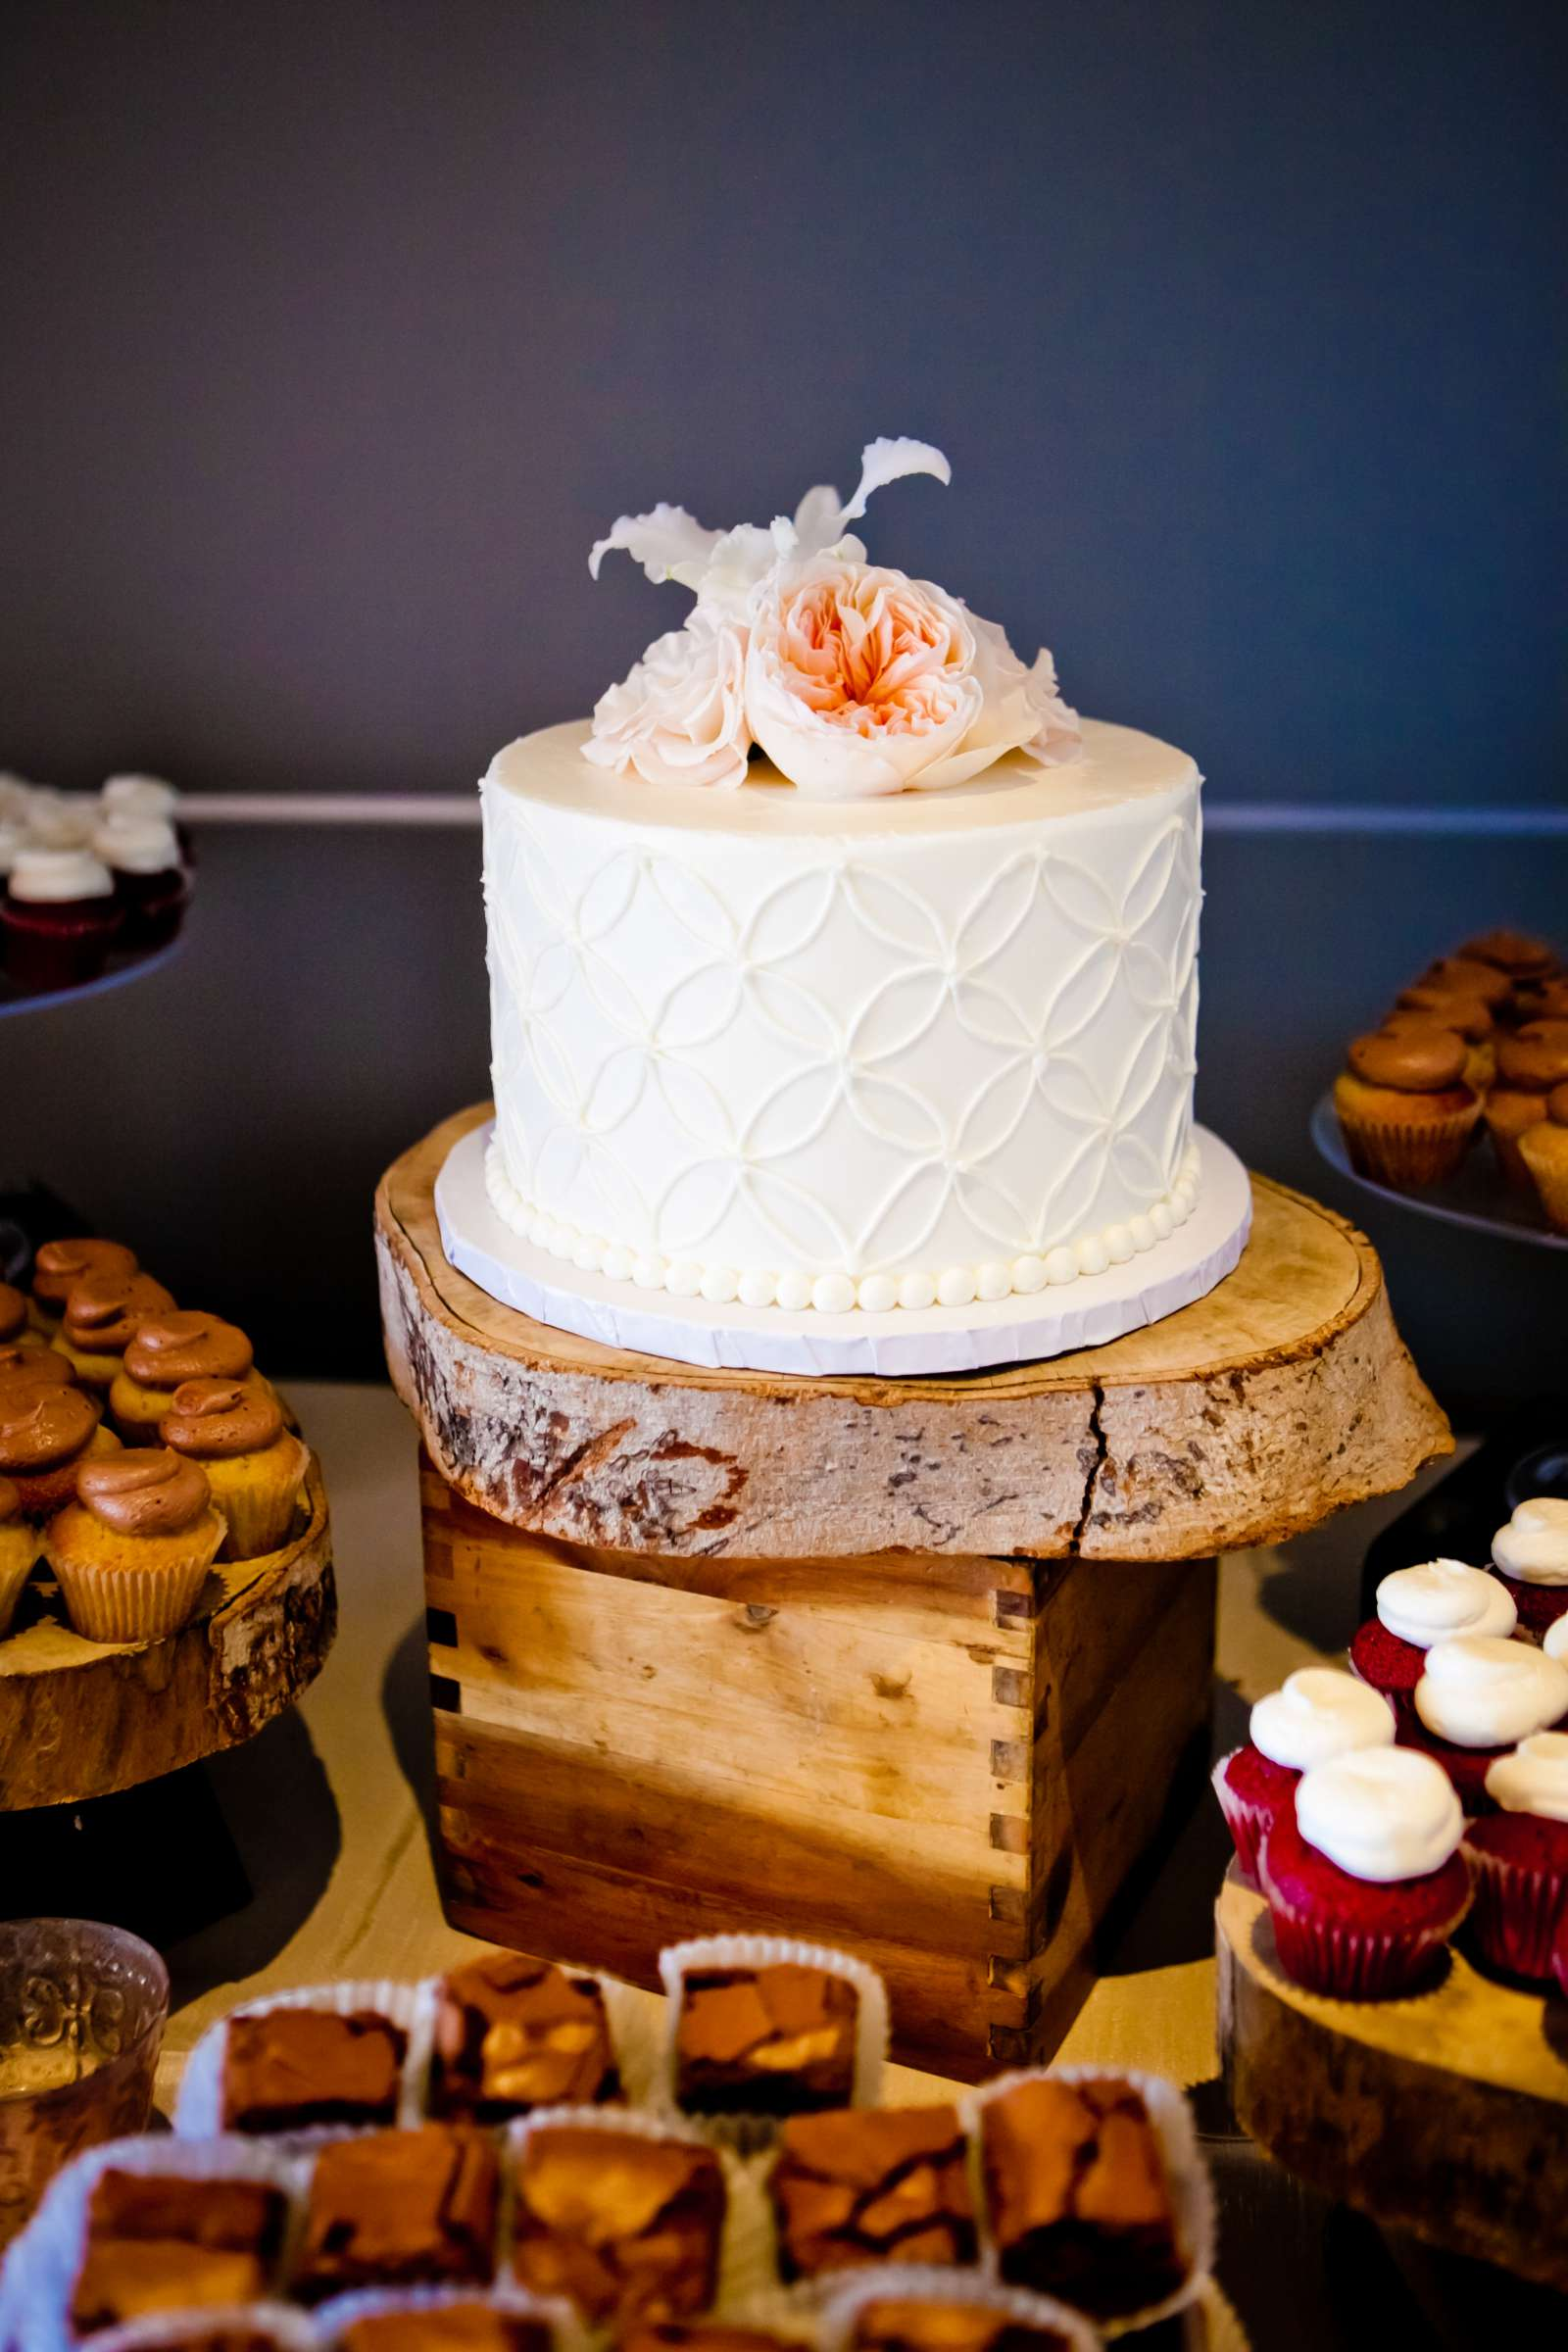 Cake at Ultimate Skybox Wedding, Chelsea and Frank Wedding Photo #61 by True Photography